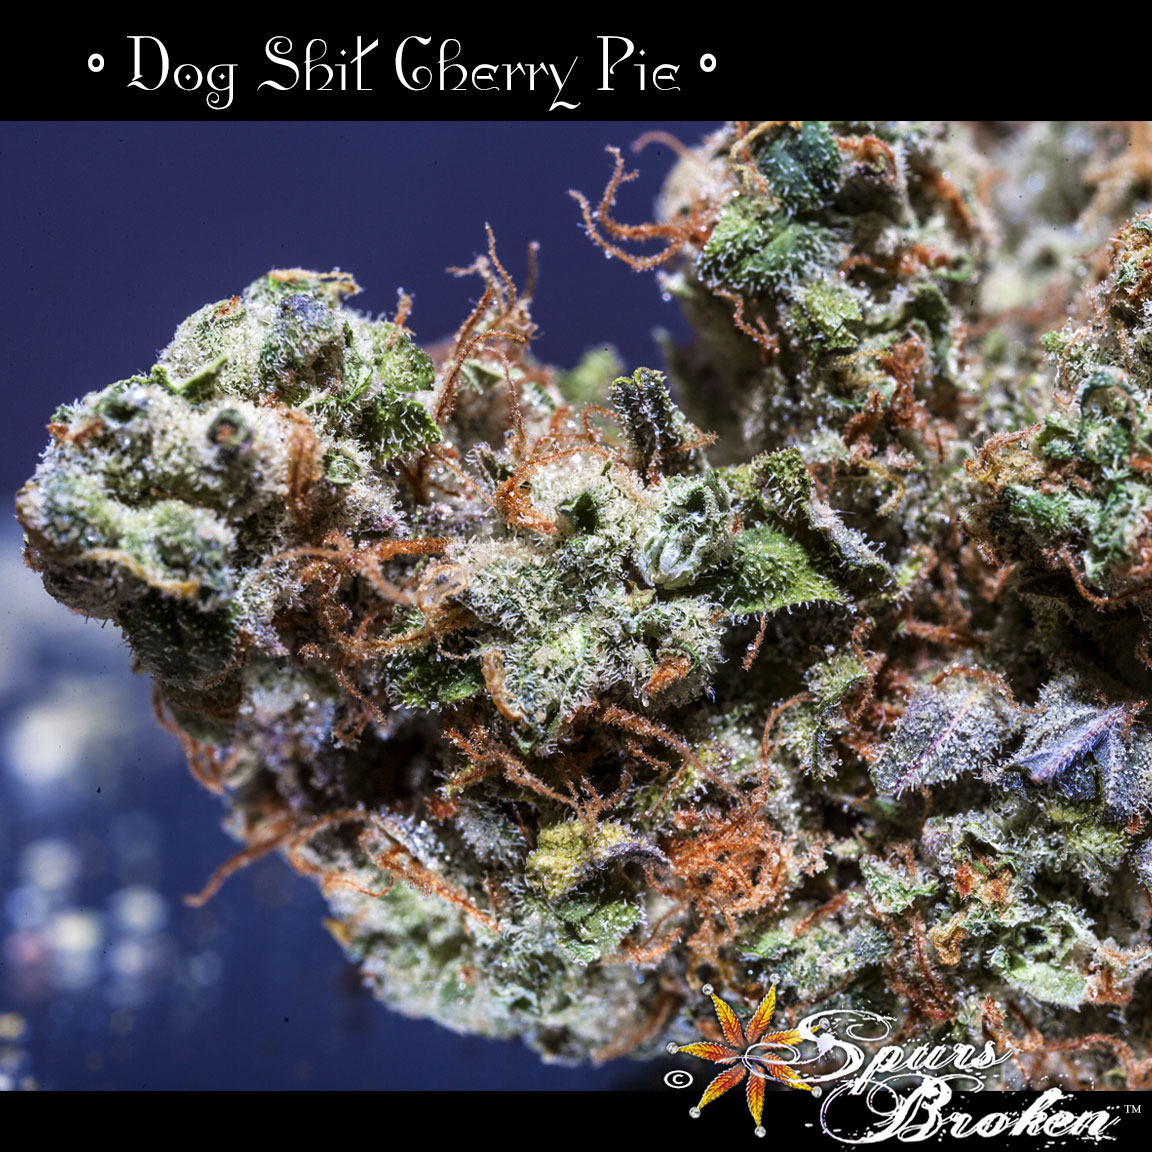 Dog Shit Cherry Pie - Cannabis Macro Photography by Spurs Broken (Robert R. Sanders)